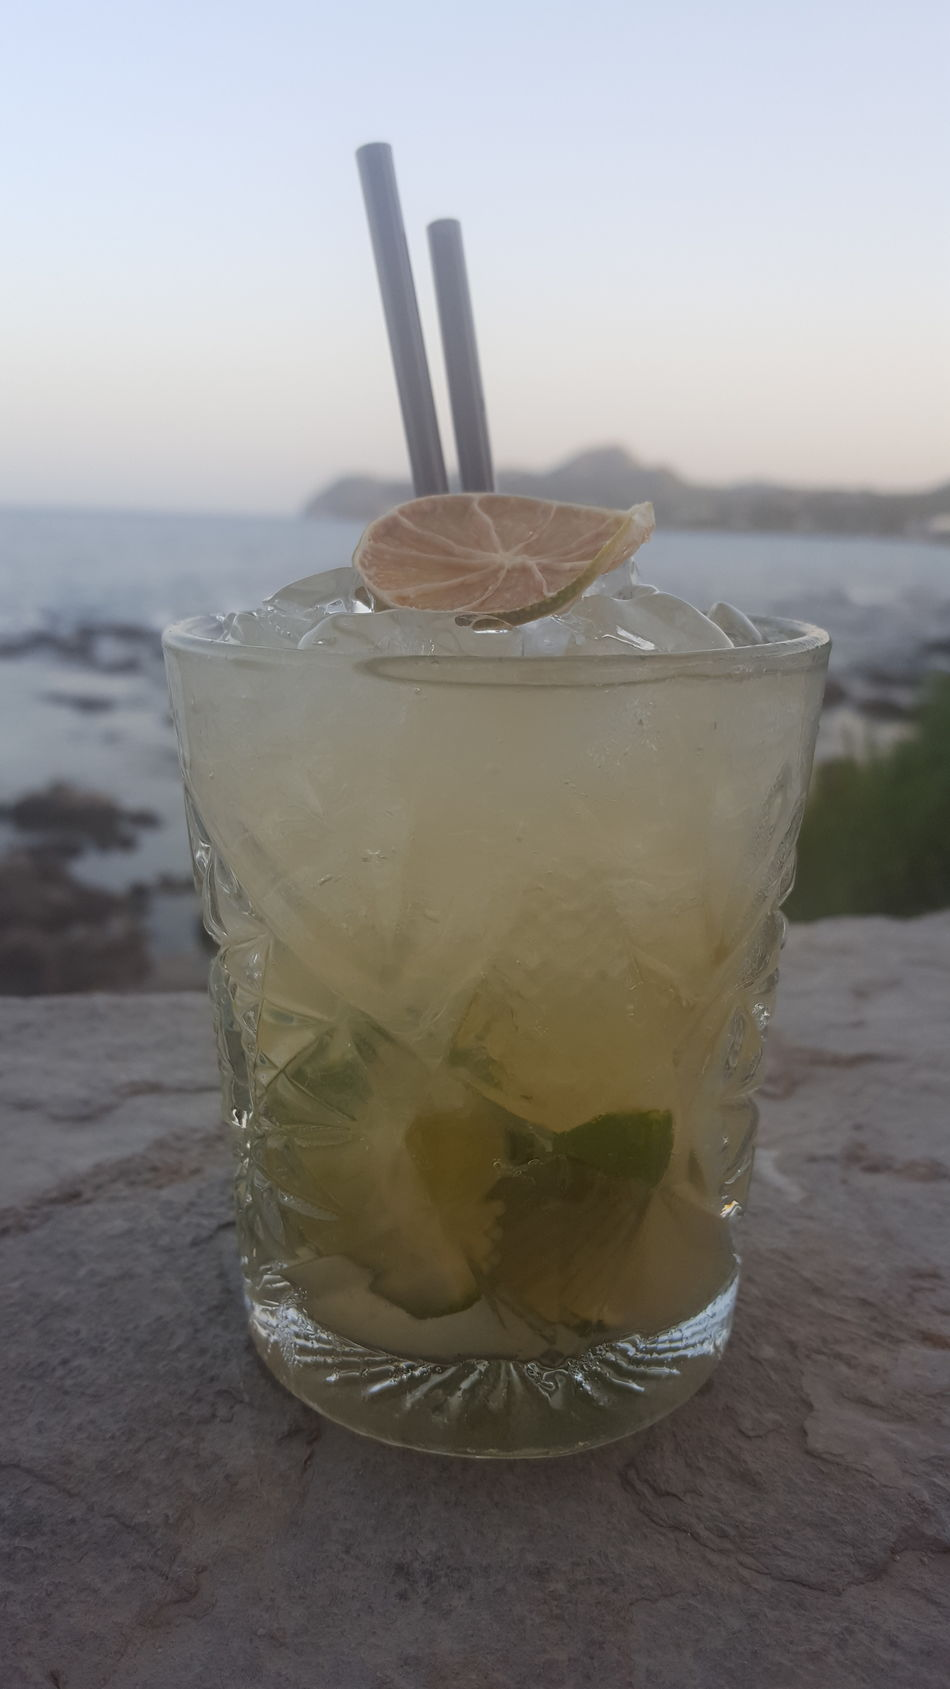 First Eyeem Photo Cala Ratjada Tapas Sundown Caipirinha Drink Ice Best Time Lime Limette Fresh Alcohol Relaxing